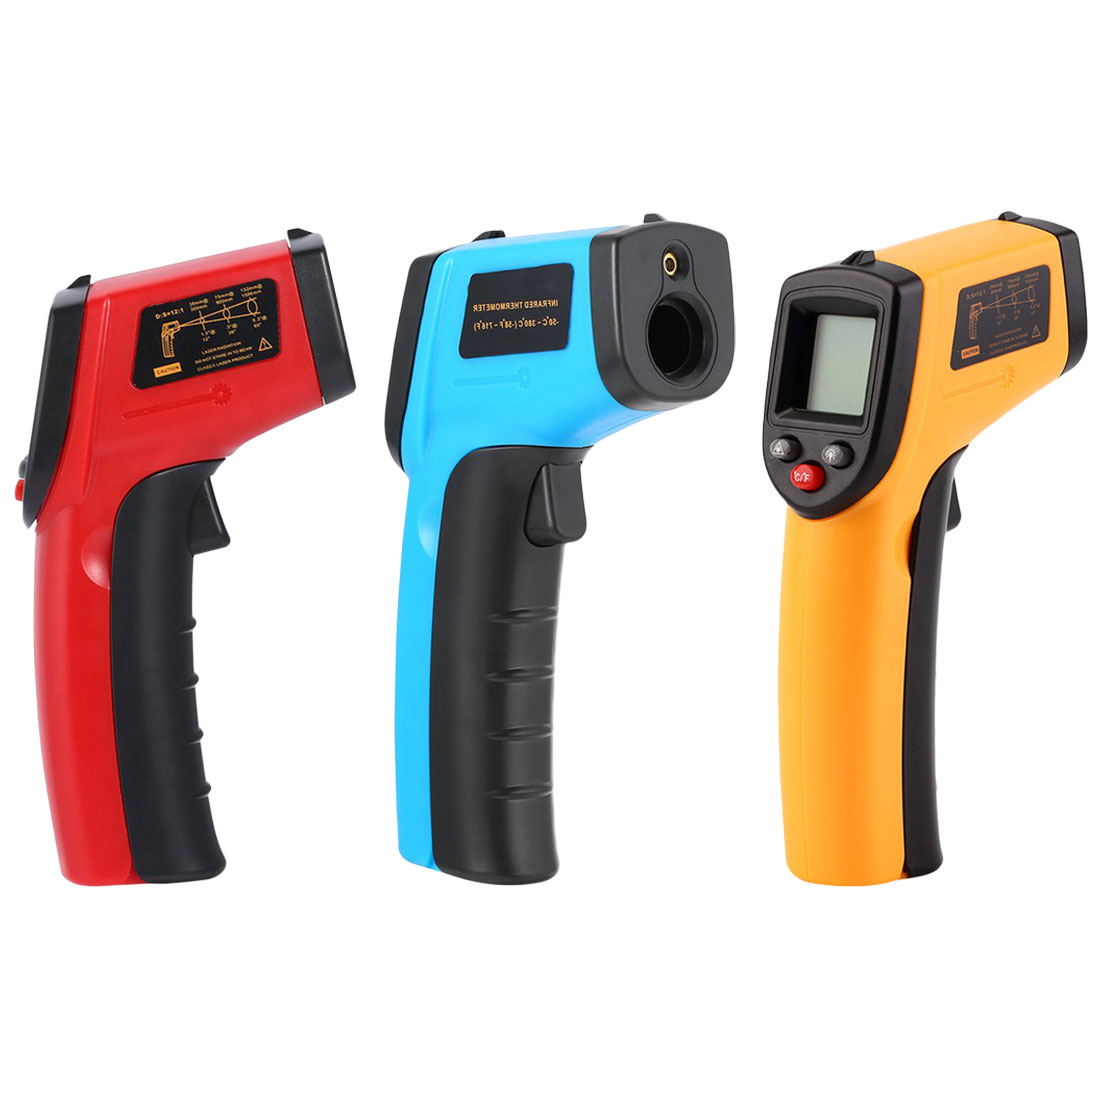 GM320 -50~380C Digital Infrared Thermometer Non Contact Infrared Thermometer Pyrometer IR Laser Temperature Meter Gun